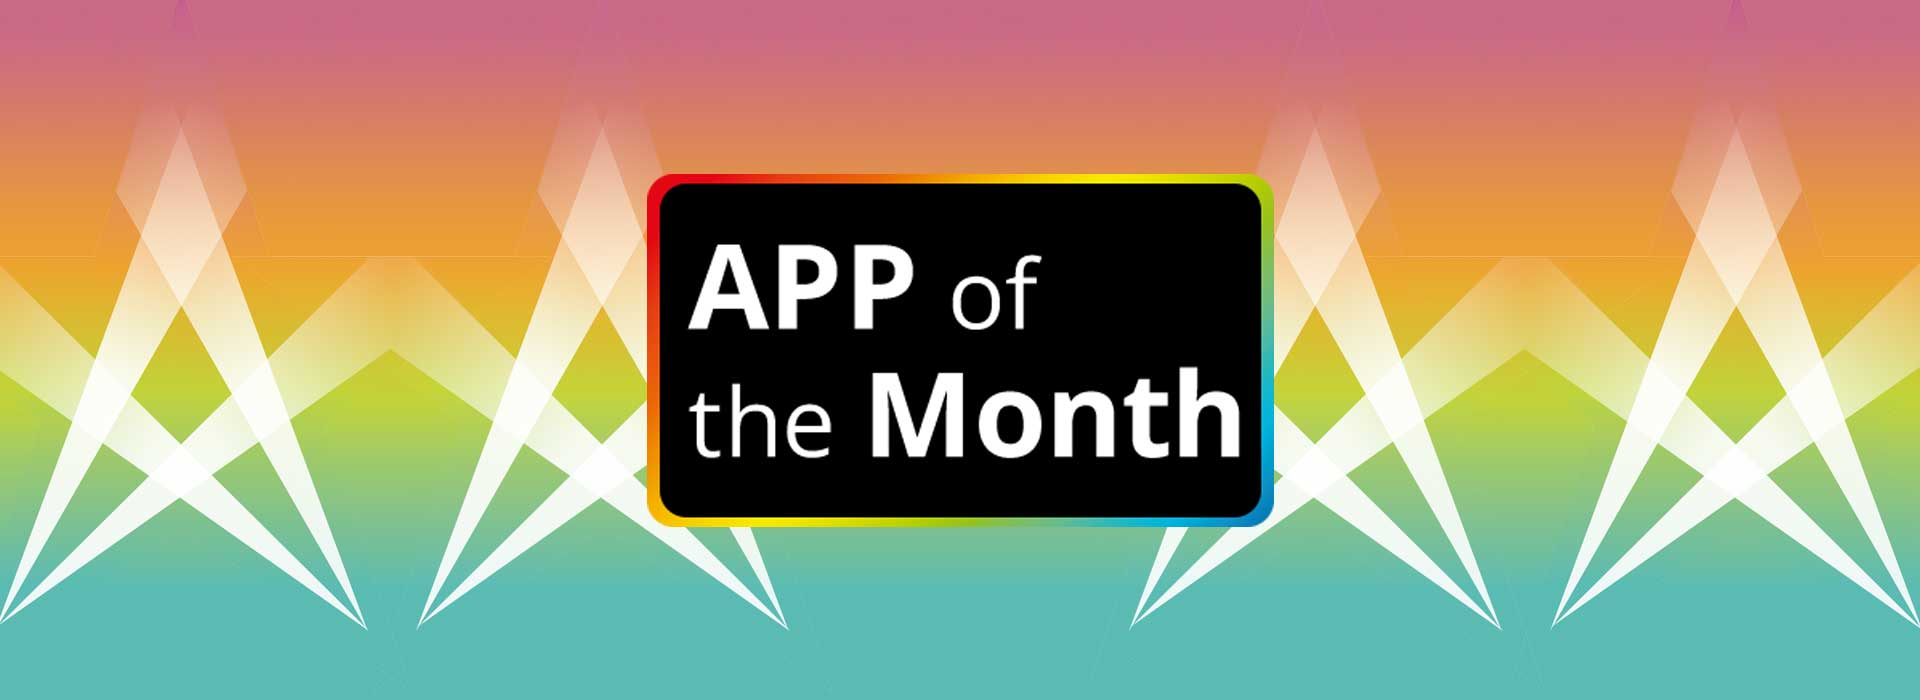 Sync My Lights Awarded App of the Month by Philips Hue!